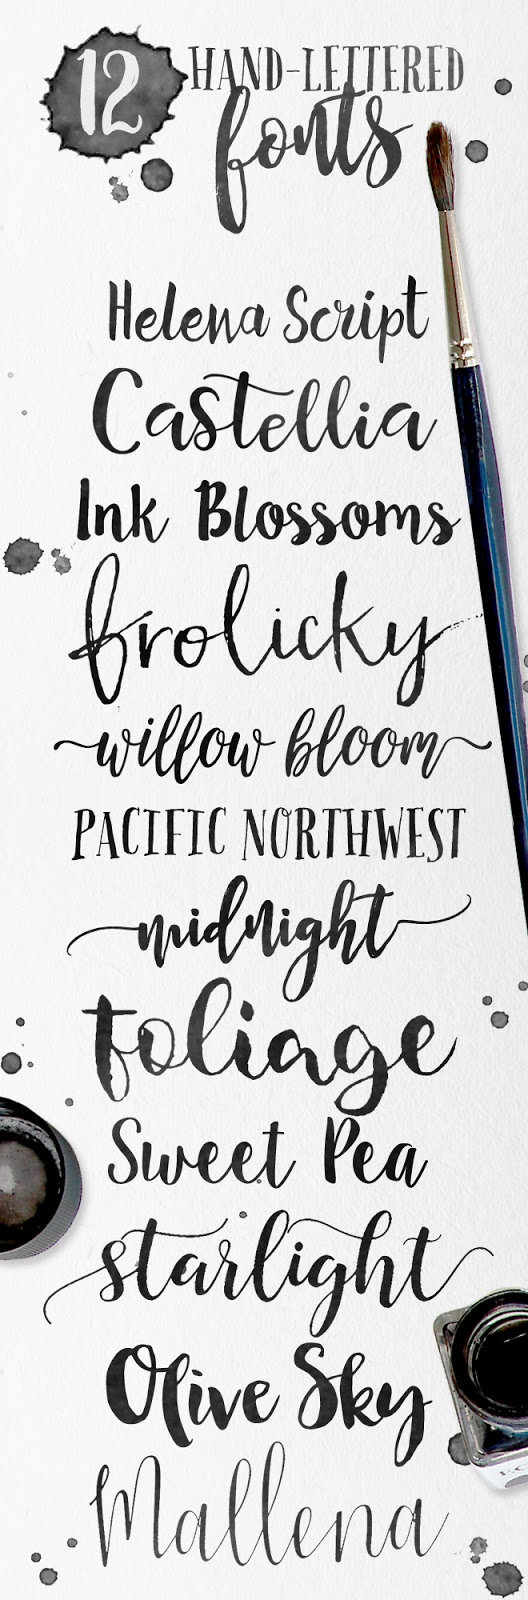 hand lettered modern brush fonts, some free